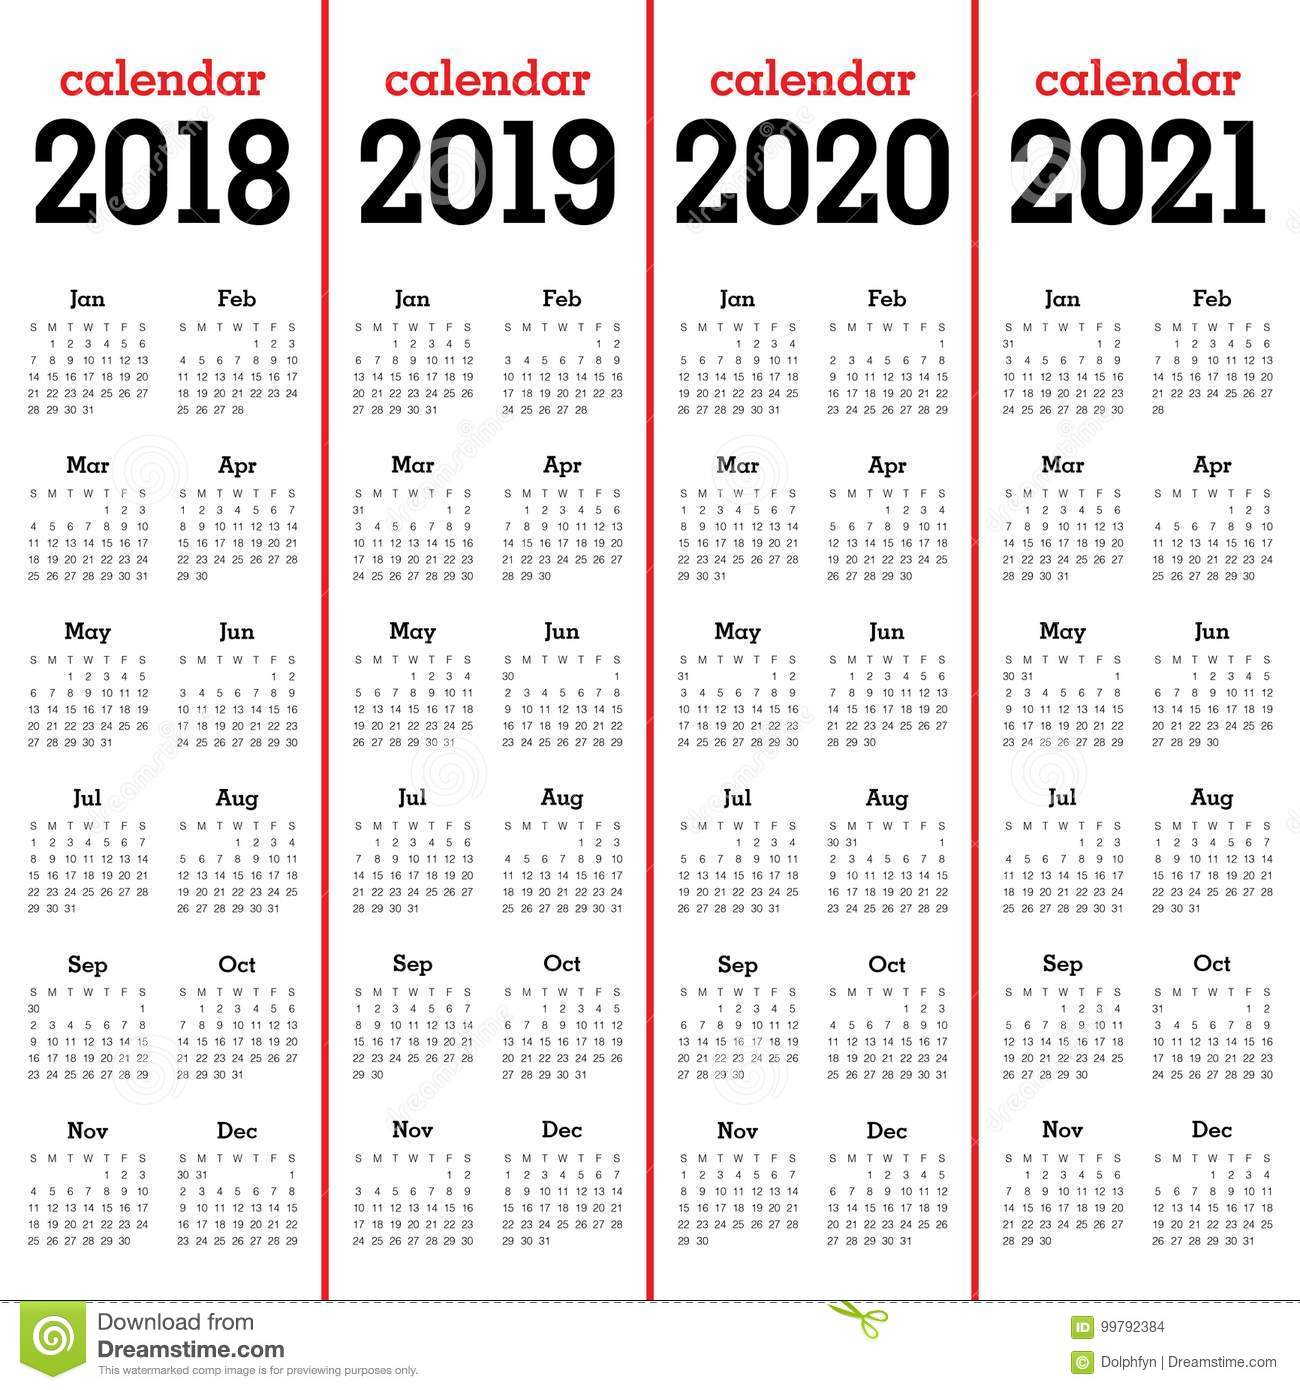 Year 2018 2019 2020 2021 Calendar Vector Stock Vector - Illustration pertaining to Calendar Yearly 2019 2020 2021